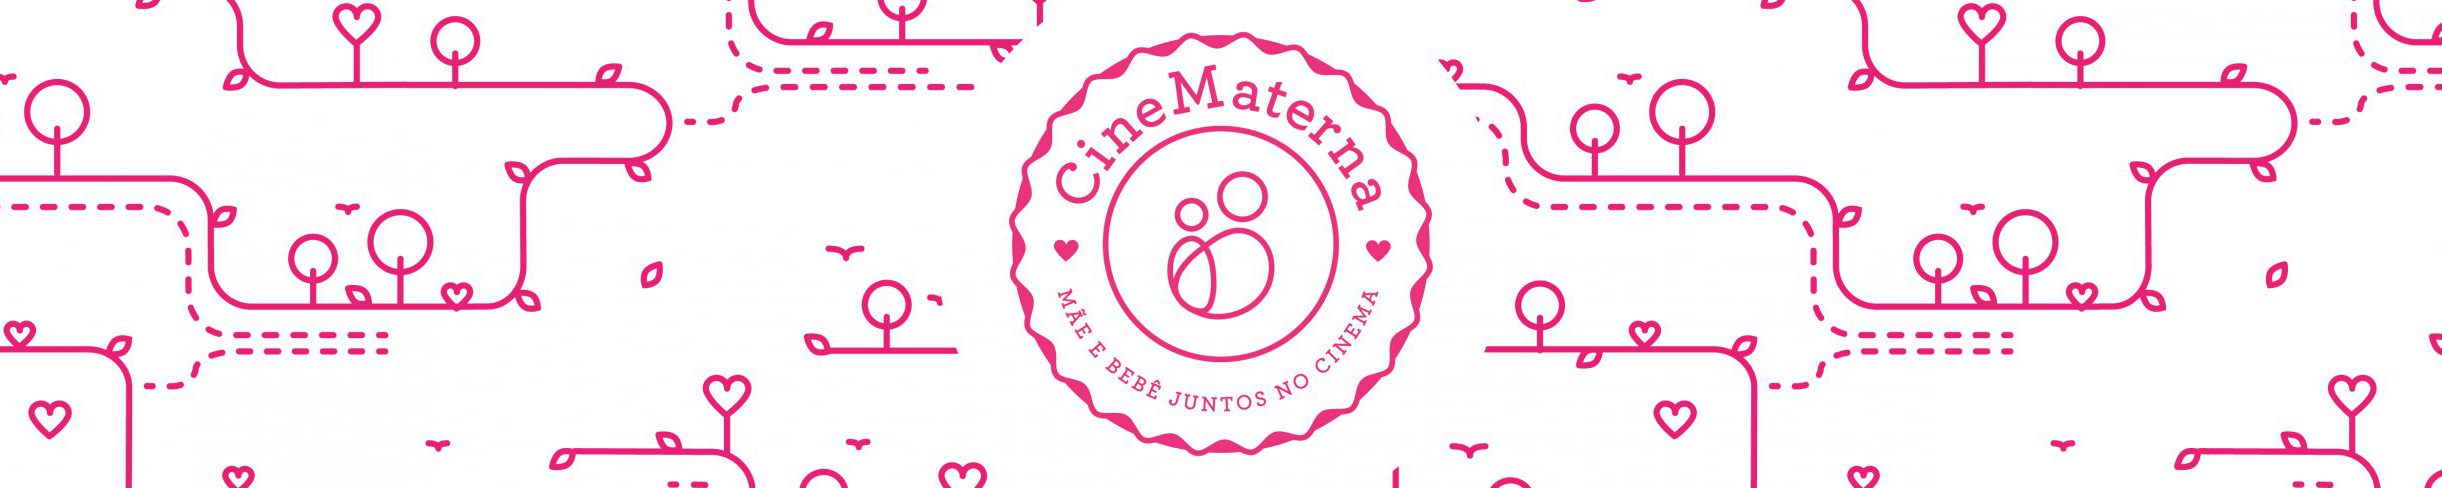 Blog do CineMaterna